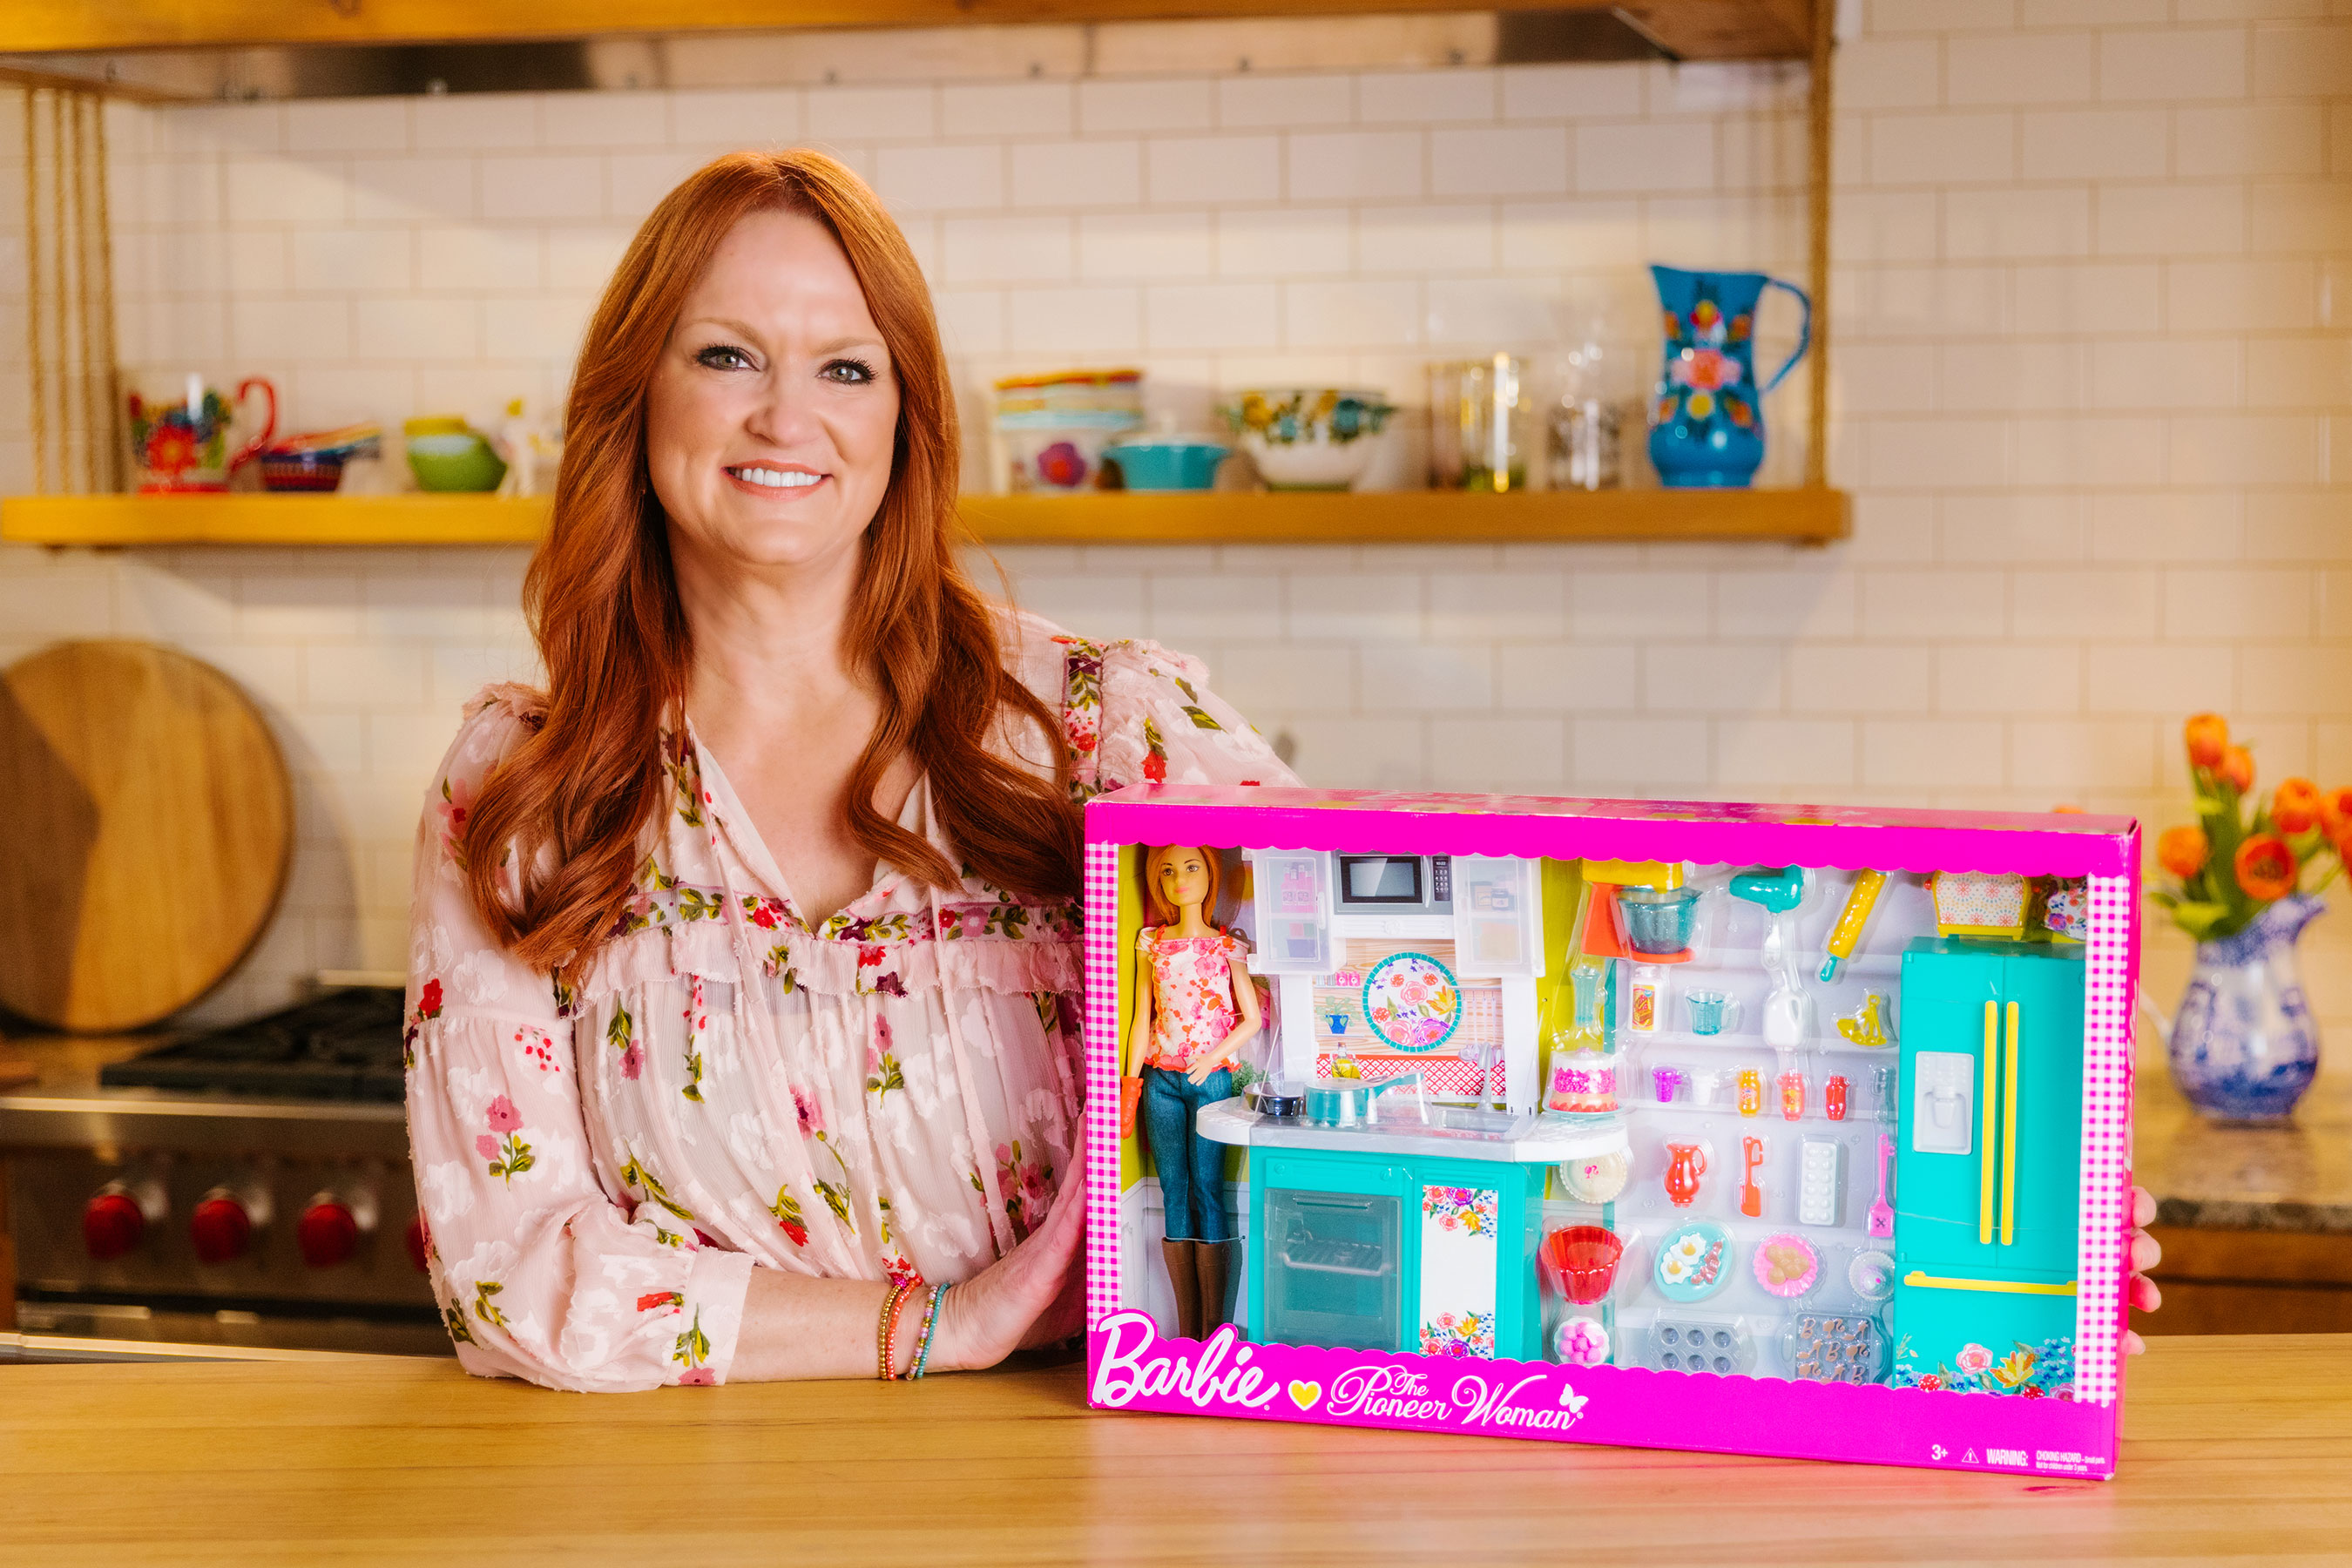 Pioneer Woman Ree Drummond 2